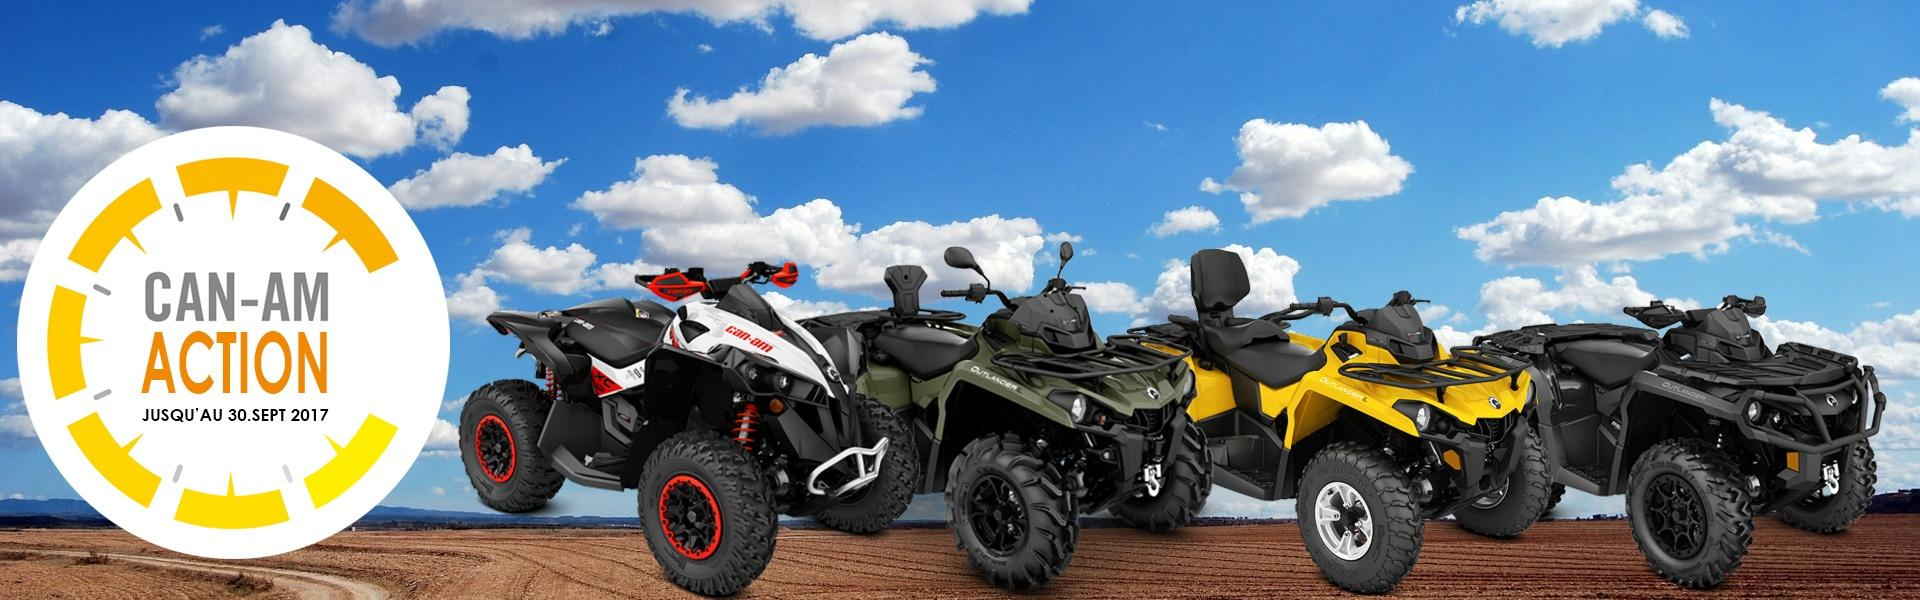 canam-action-17